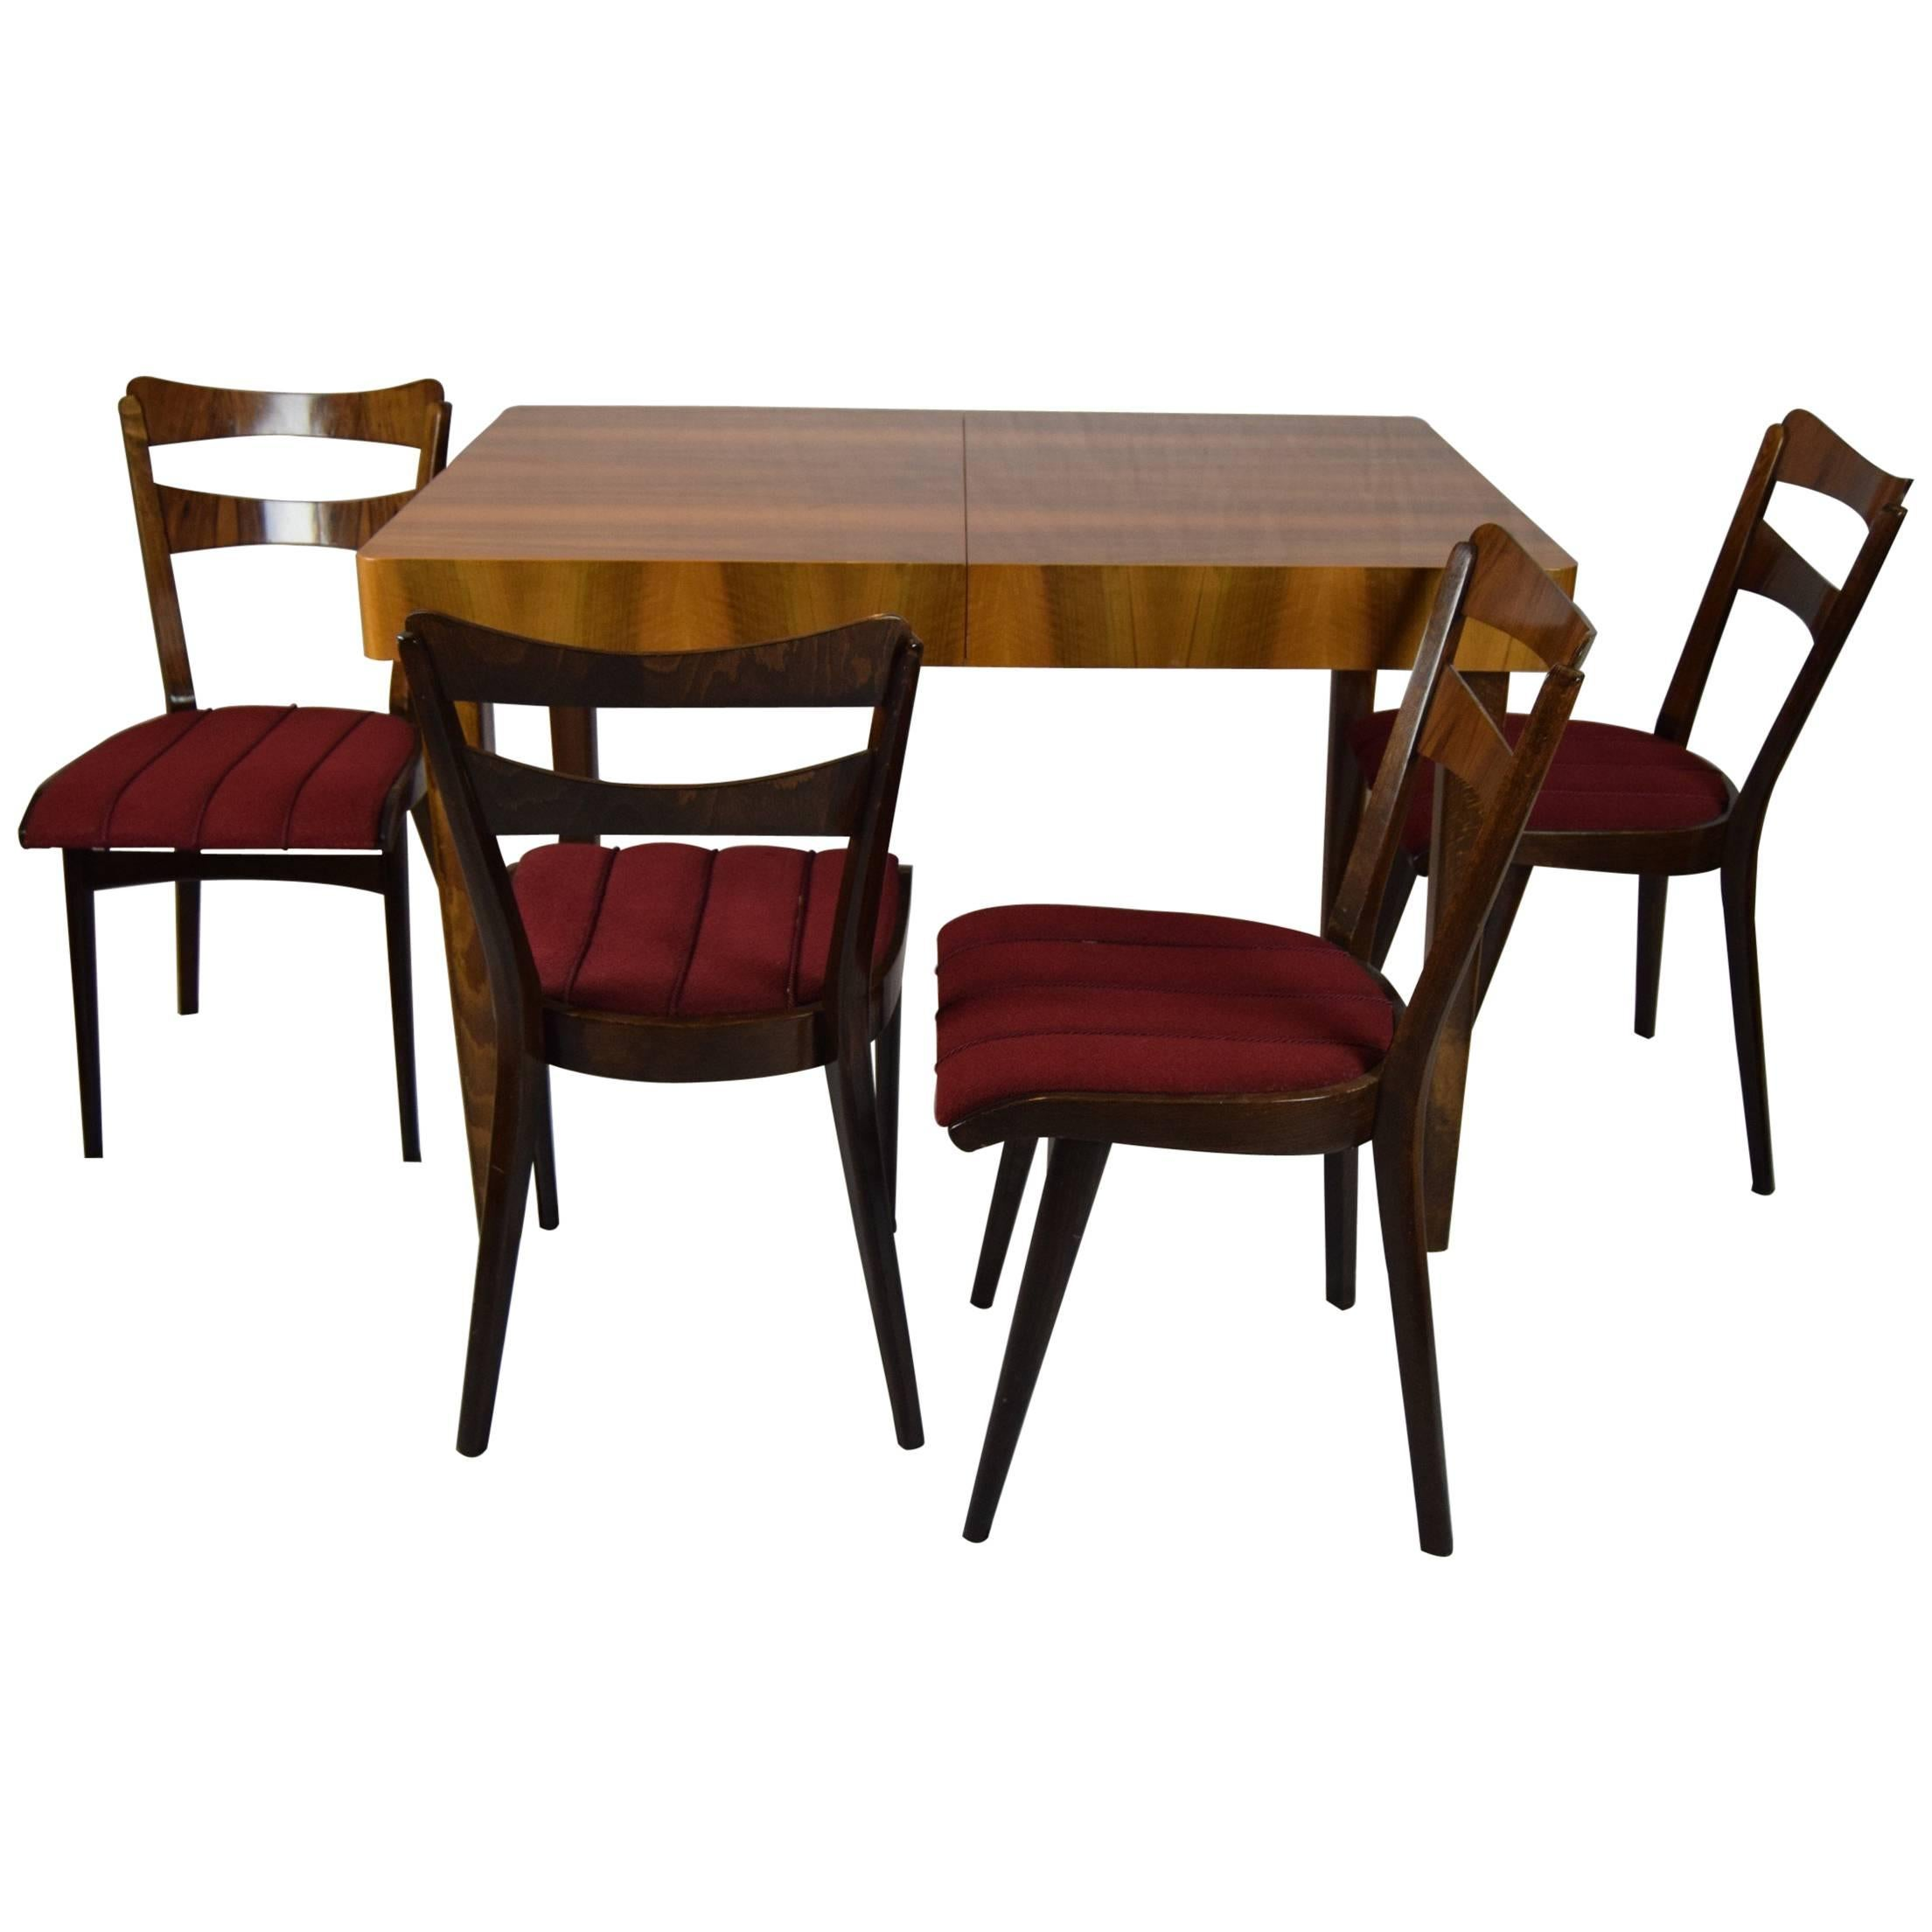 Teak Dining Room Chairs Set Of Four Teak Dining Chairs And Dining Table 1960s